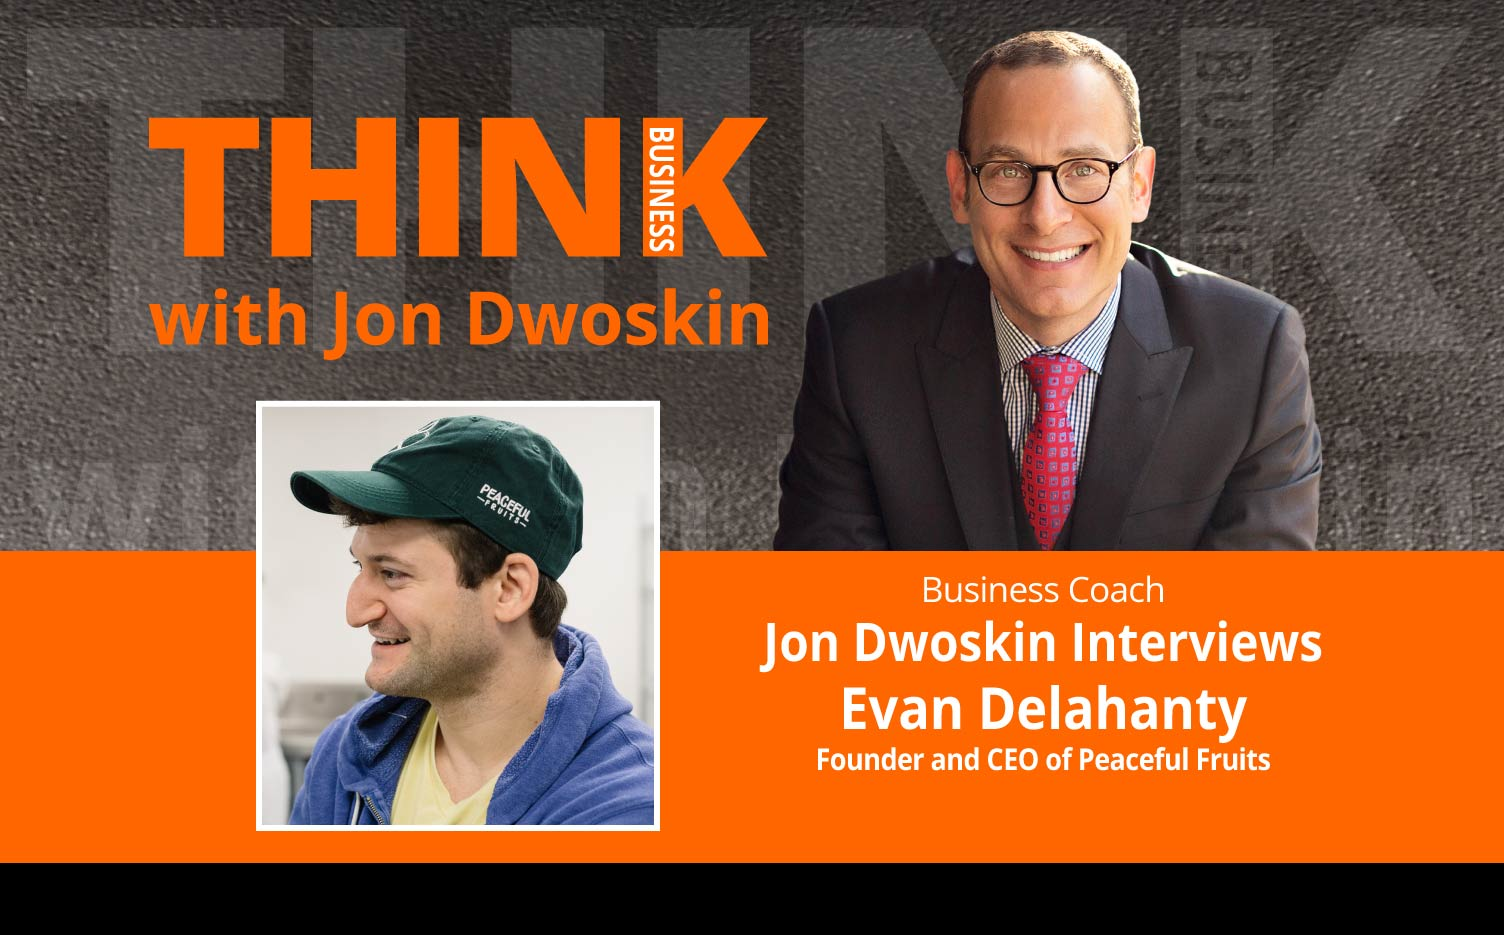 THINK Business Podcast: Jon Dwoskin Interviews Evan Delahanty, Founder and CEO of Peaceful Fruits